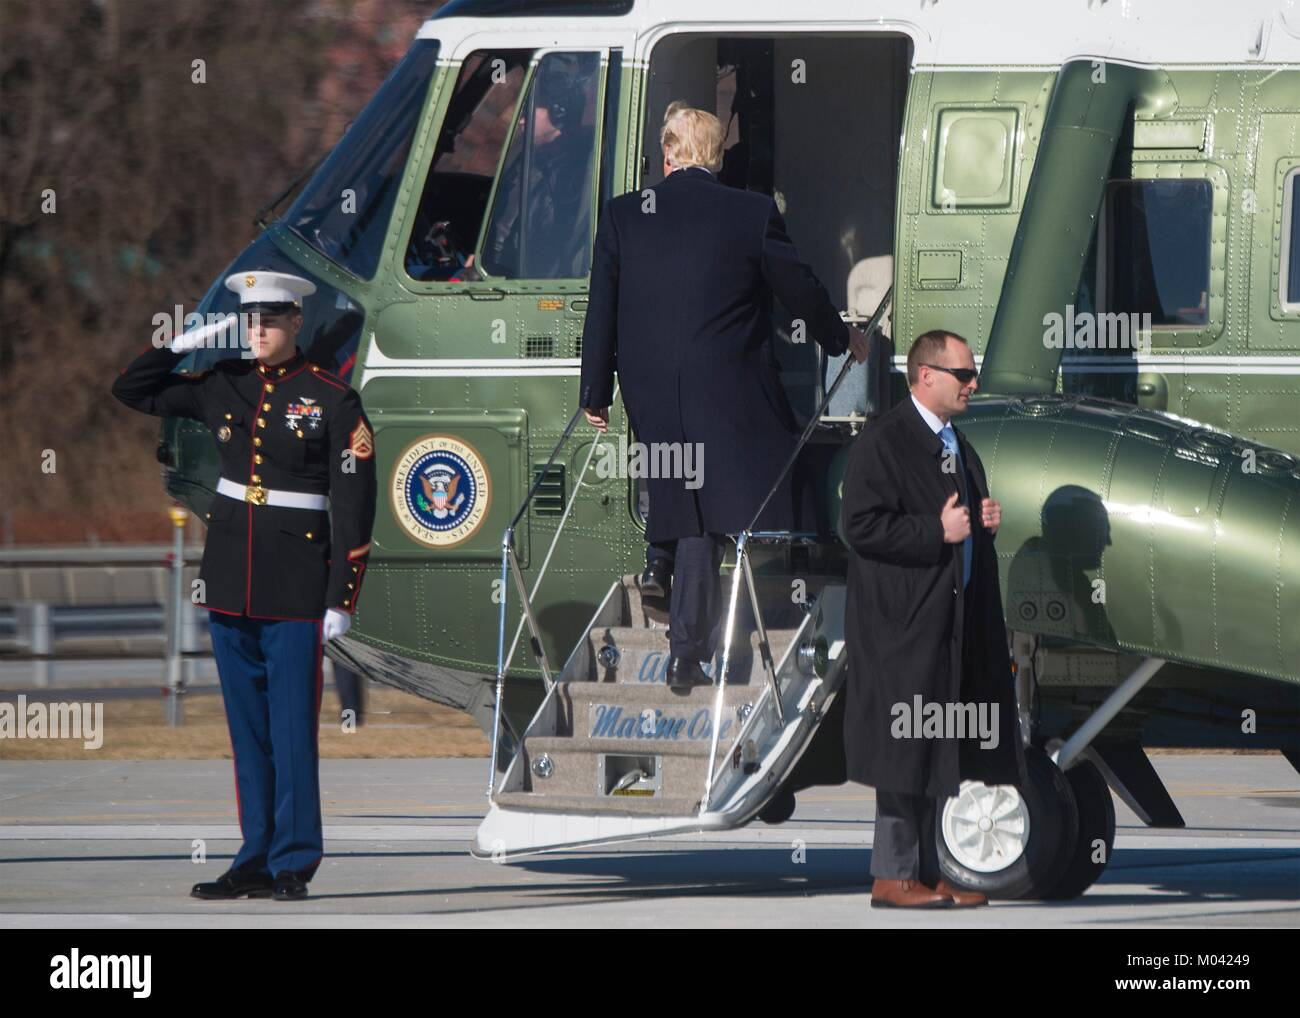 Arlington, United States Of America. 18th Jan, 2018. U.S. President Donald Trump boards Marine One helicopter following - Stock Image